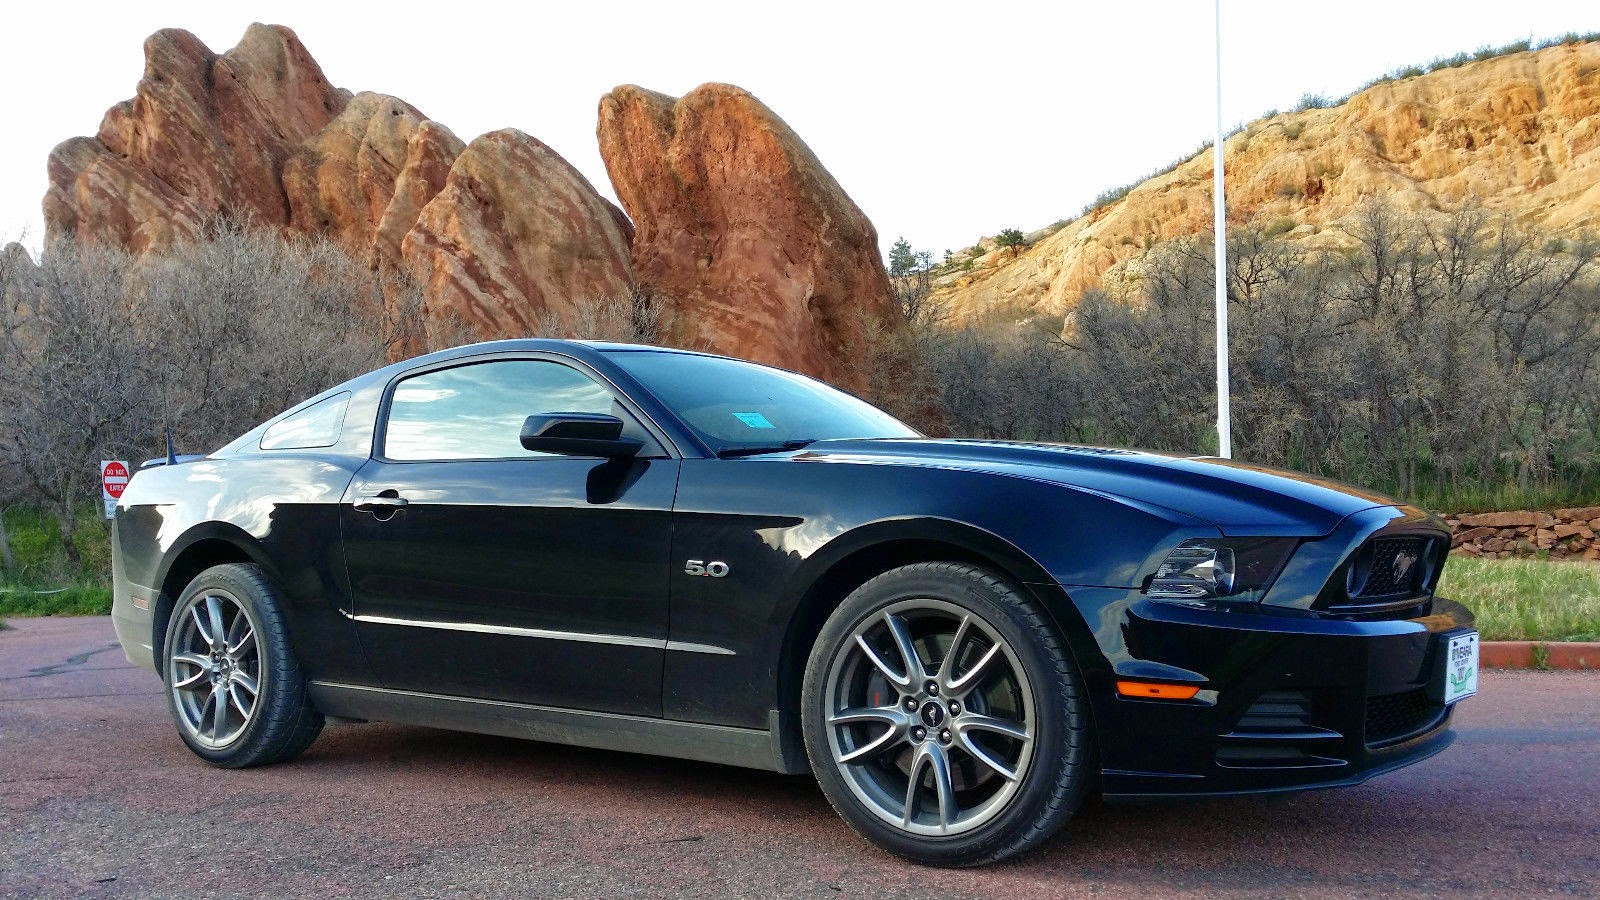 2014 ford mustang gt coupe 2 door 5 0l brembo package for sale american muscle cars. Black Bedroom Furniture Sets. Home Design Ideas